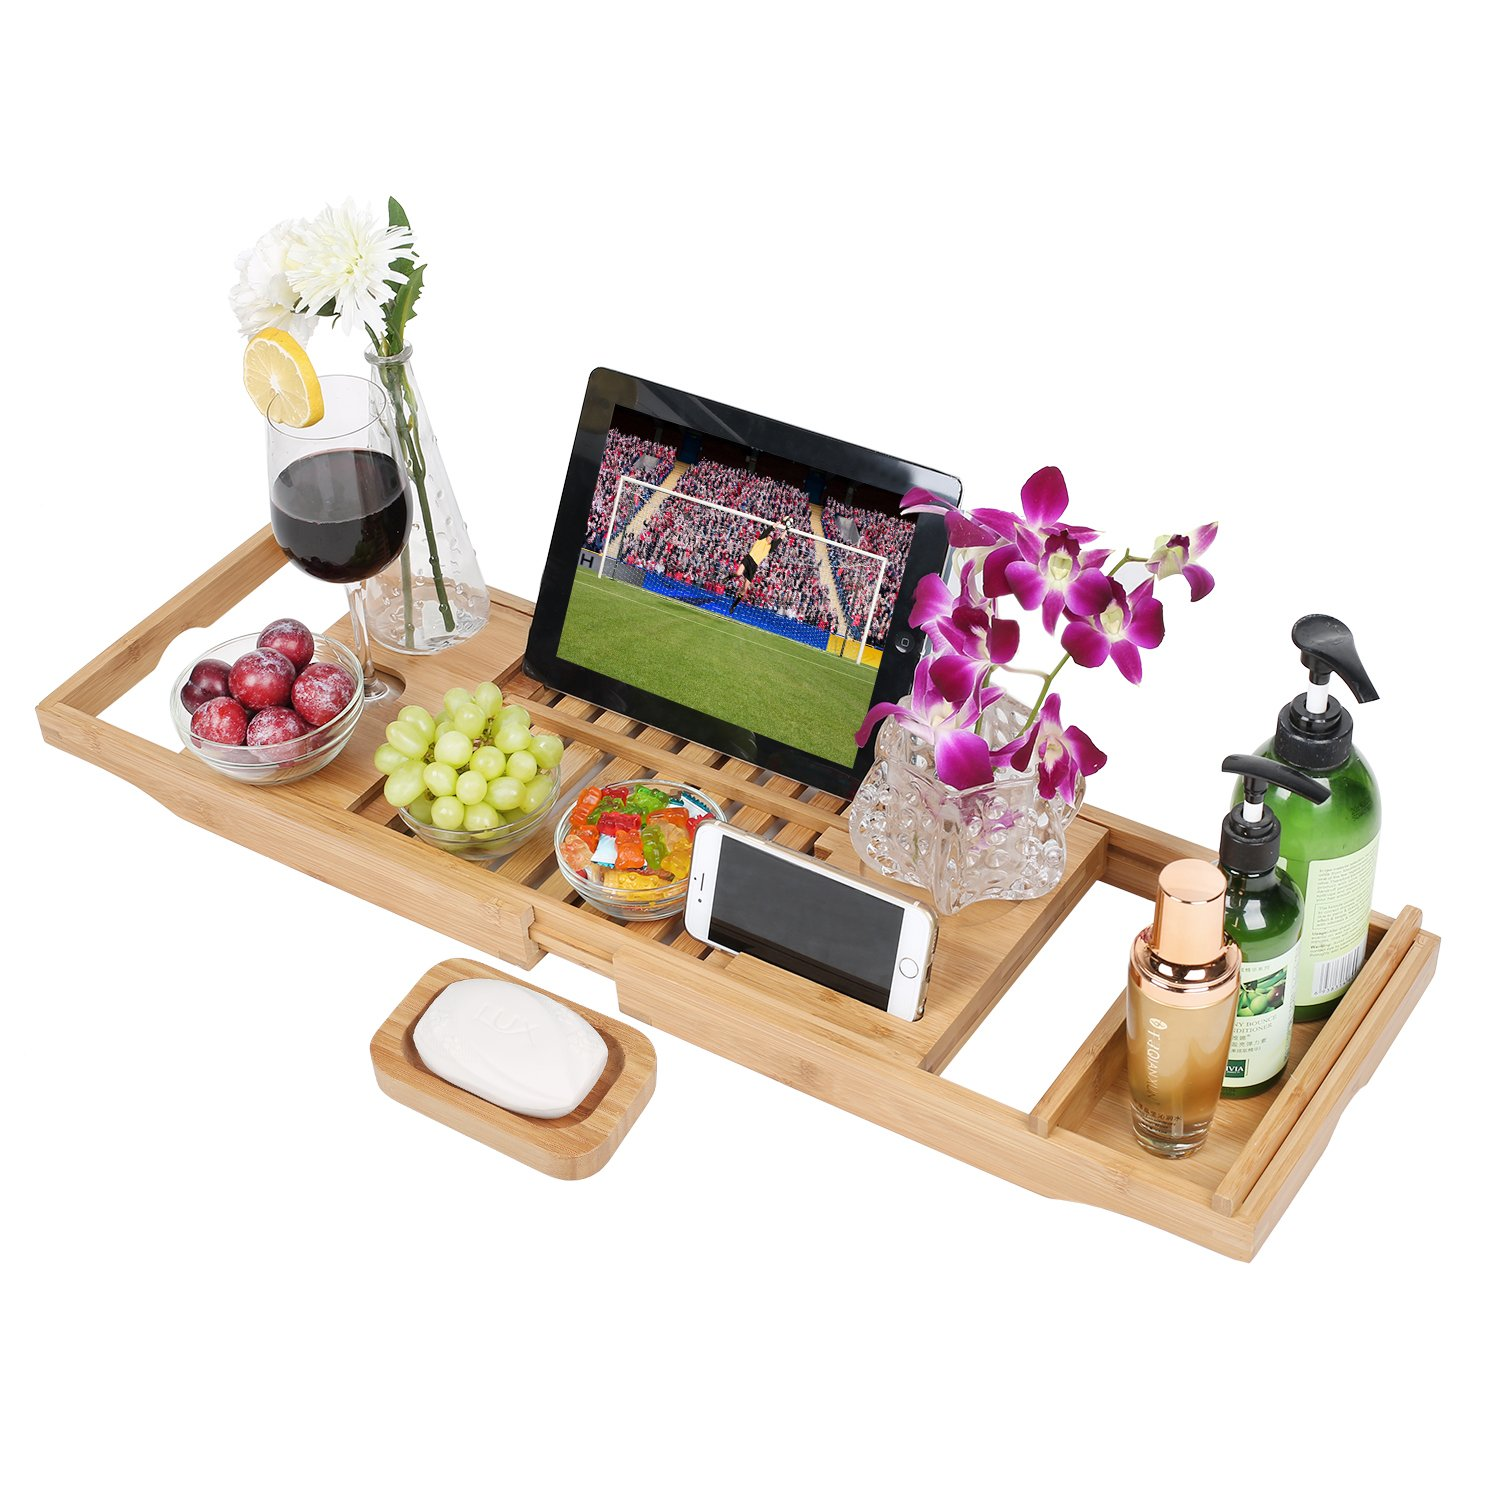 Luxury Bamboo Bathtub Caddy Tray,100% Natural Extendable Bamboo Wood Bath Tub Caddy Rack Built In Secure Tablet Kindle Ipad Smartphone Holder,Wine Glass Slots Bath Tray For Luxury Bath Fit Most Bath Sizes gohiking